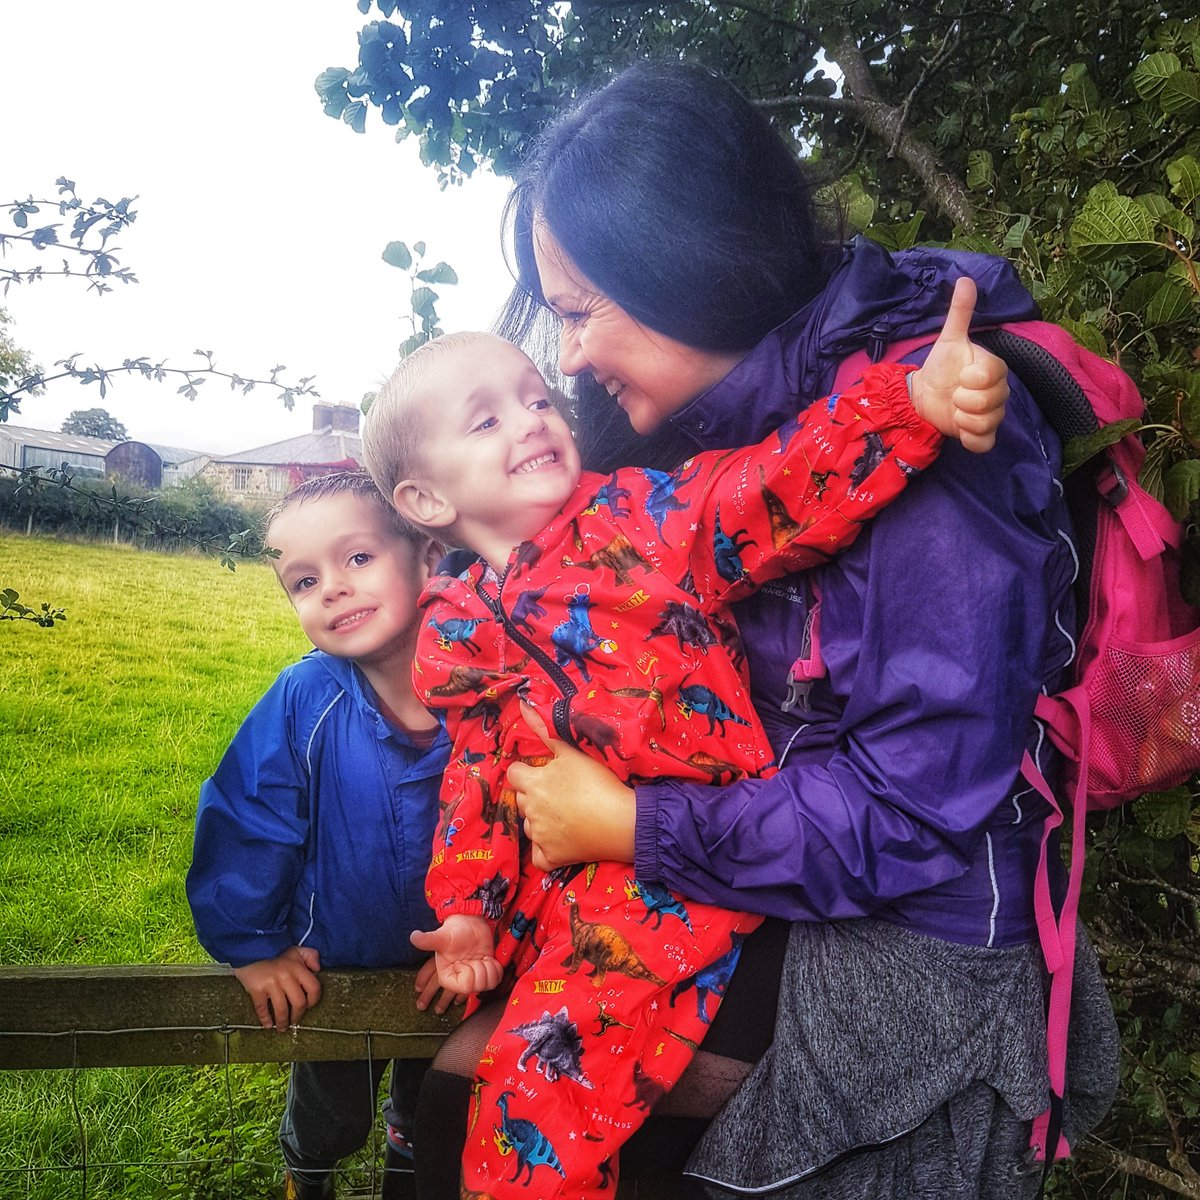 The thoroughly modern mummy: why there is no such thing as work/life balance http://dld.bz/hQ8HM #worklifebalance #worklifeblend #modernmummypic.twitter.com/8oZ0ZfRXFG